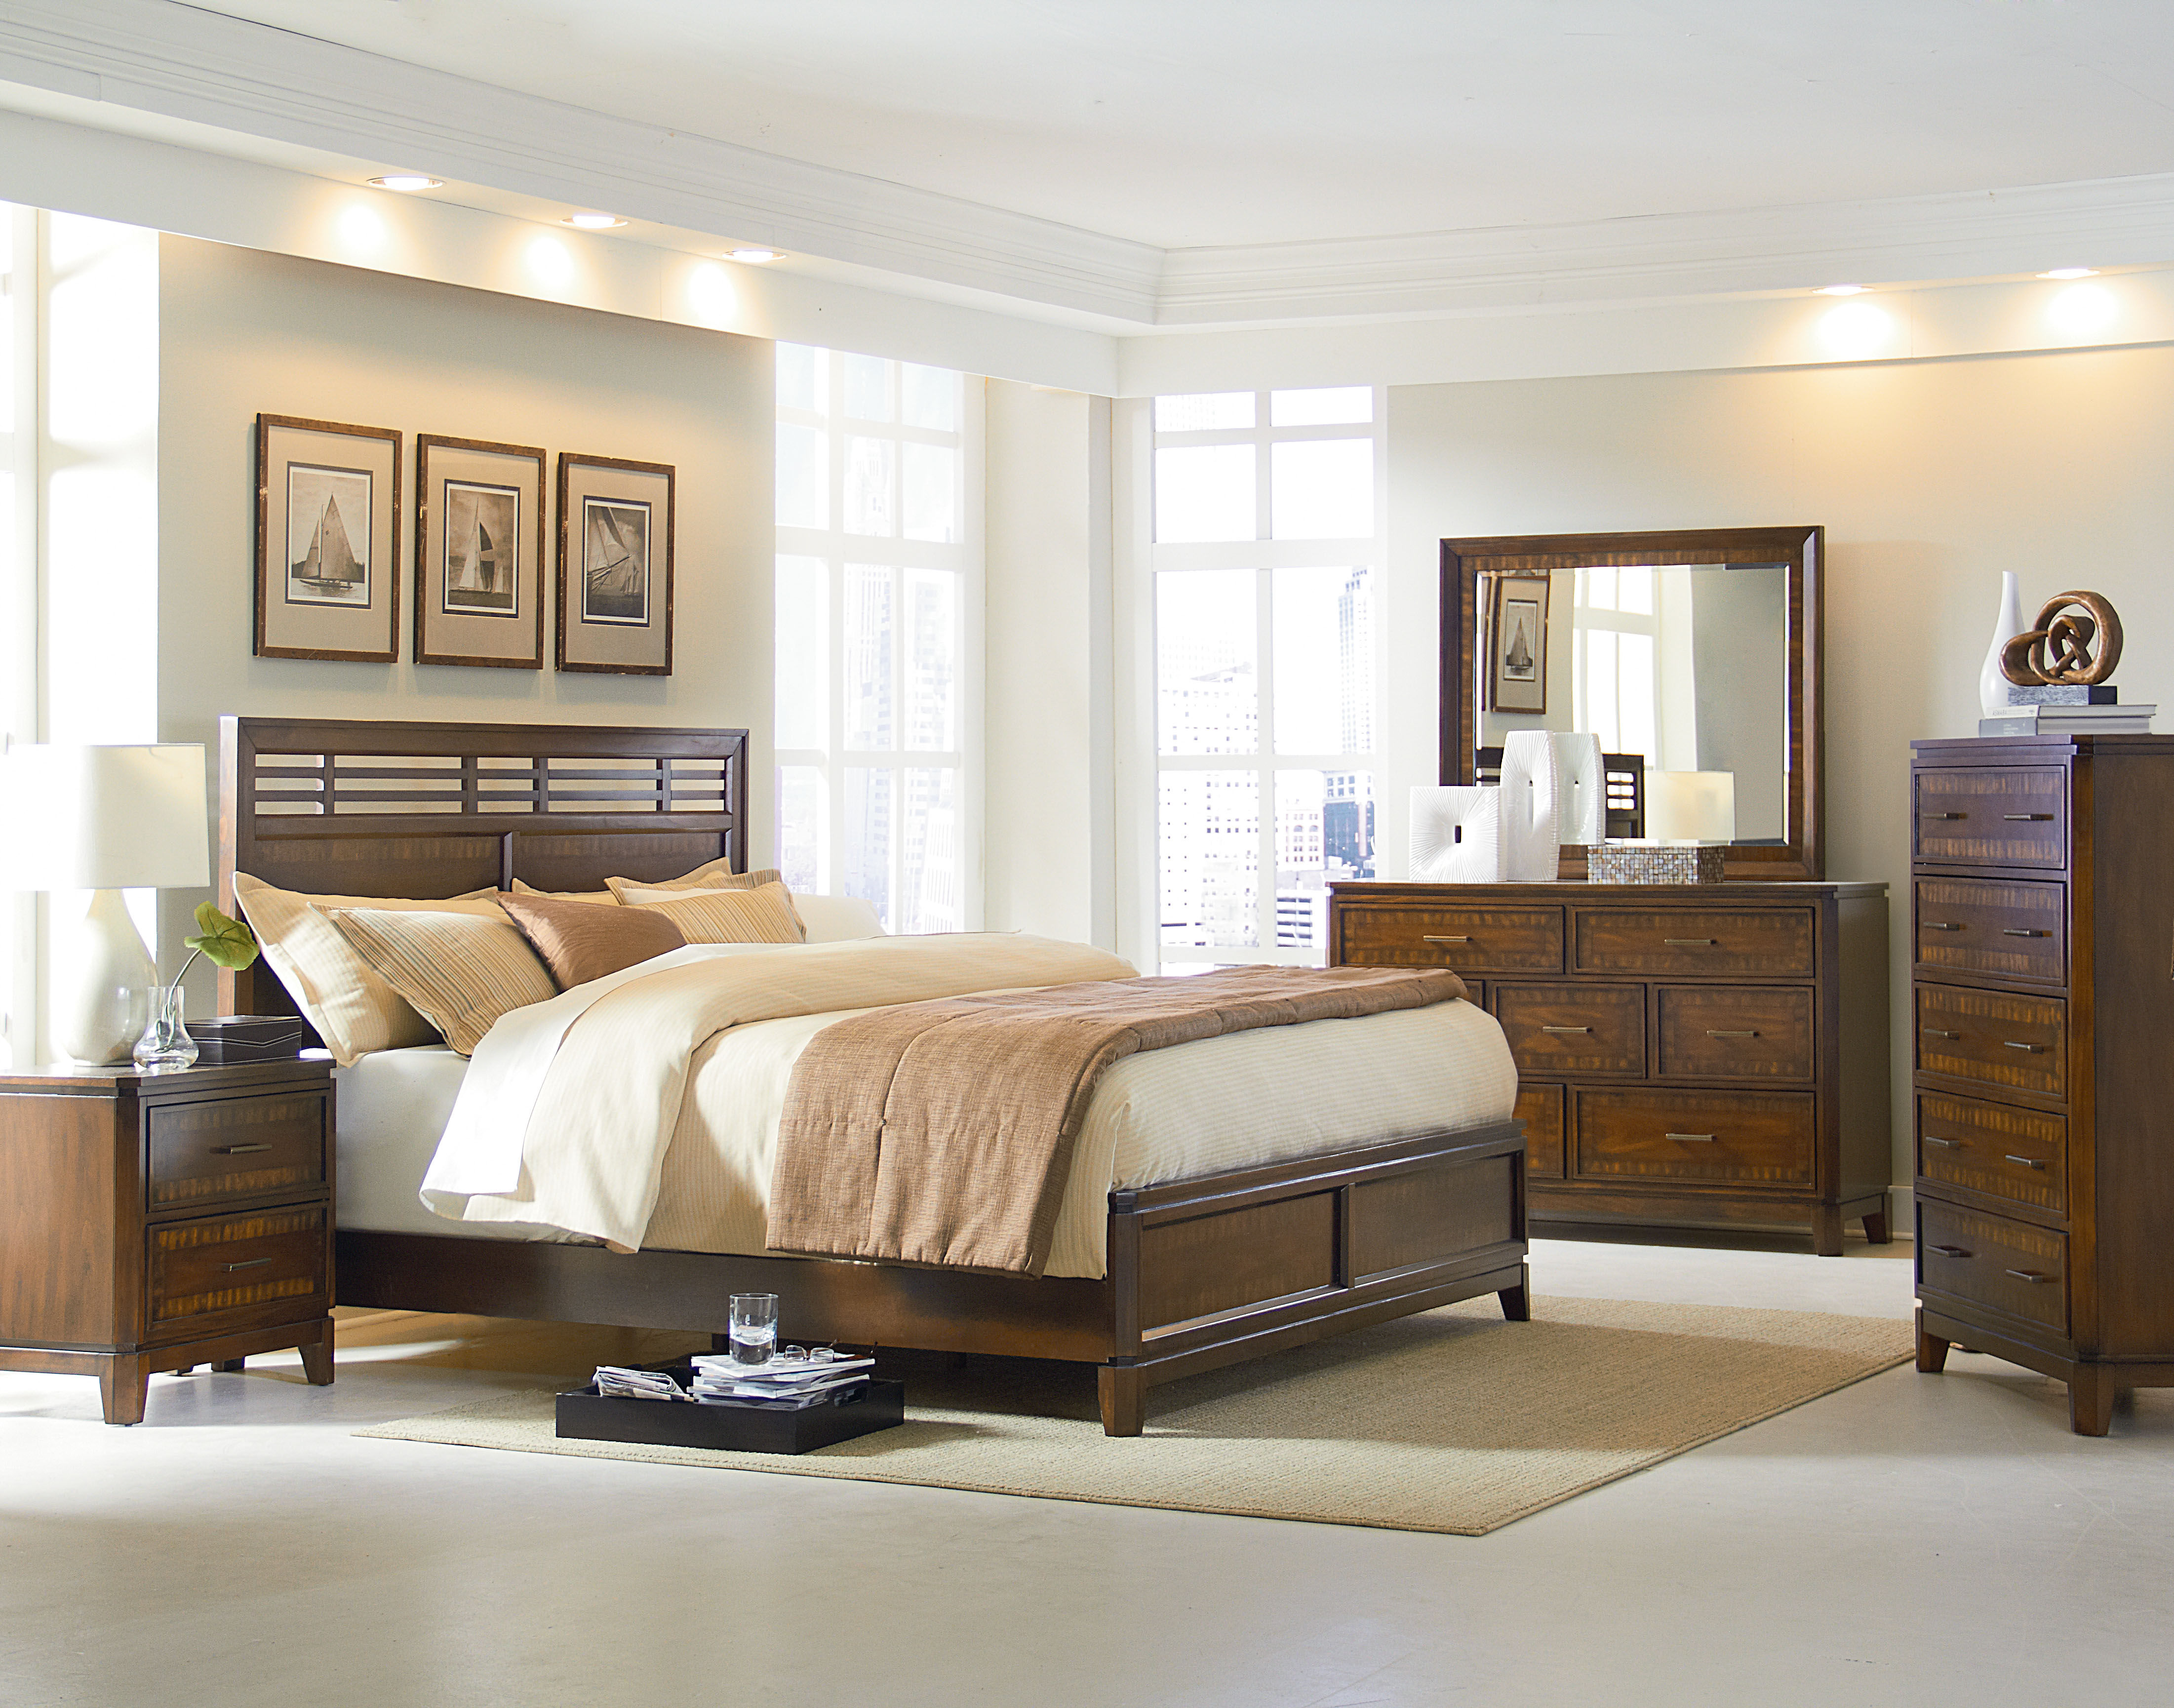 Avion transitional brown wood master bedroom set the classy home for Transitional bedroom furniture